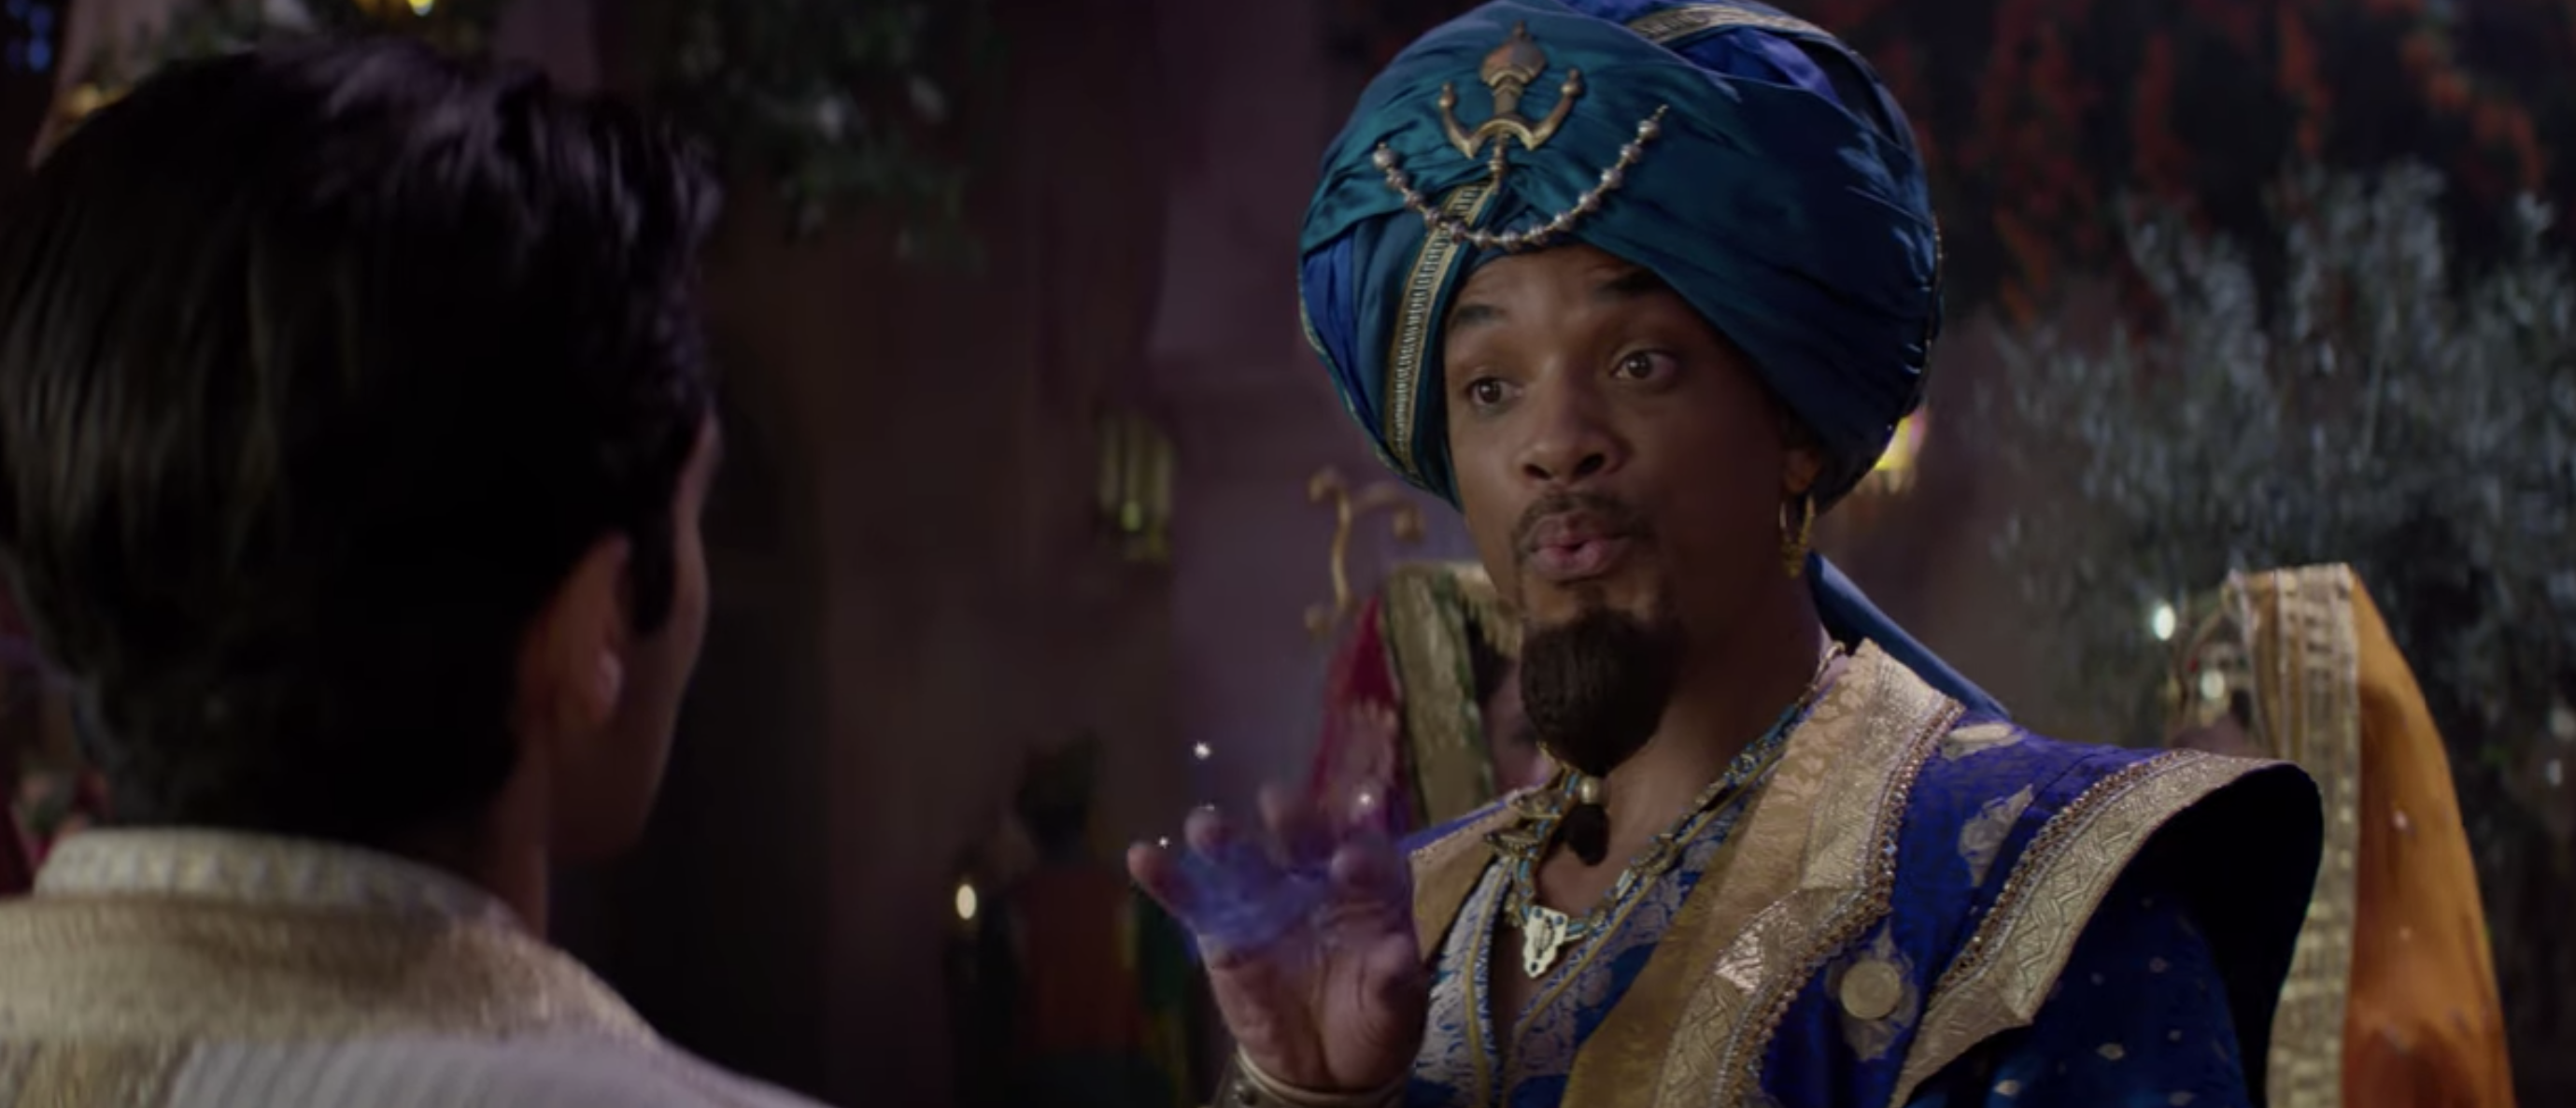 Will Smith Sings But A Whole New World Wins The New Aladdin Trailer